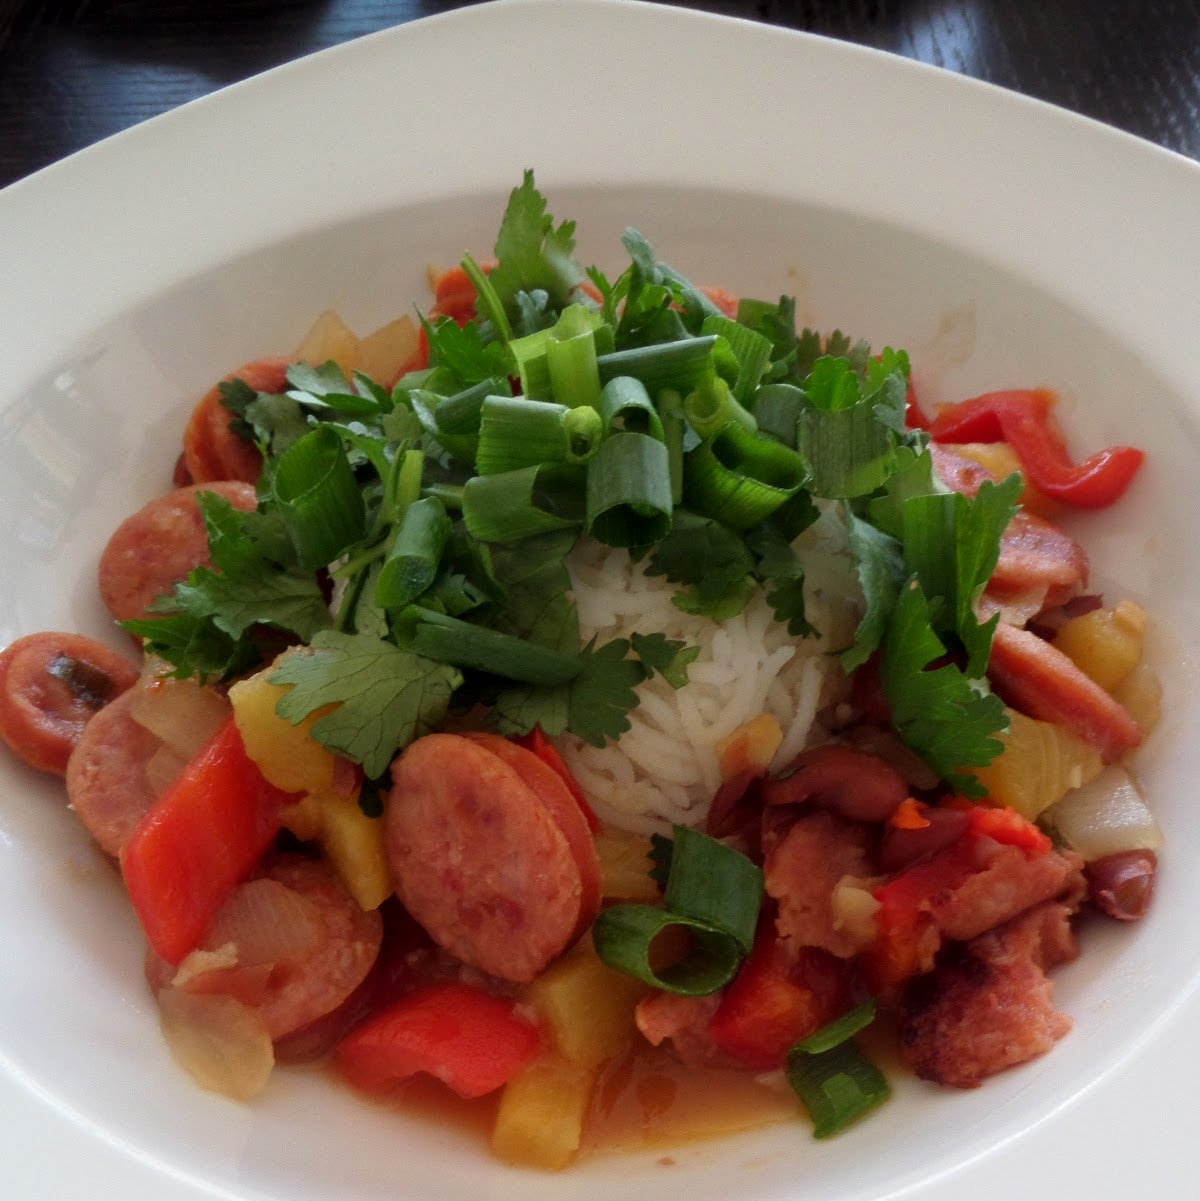 Sausage and Bean Sweet and Sour:  Pineapple sausage and beans in a spicy sweet and sour sauce served over rice.